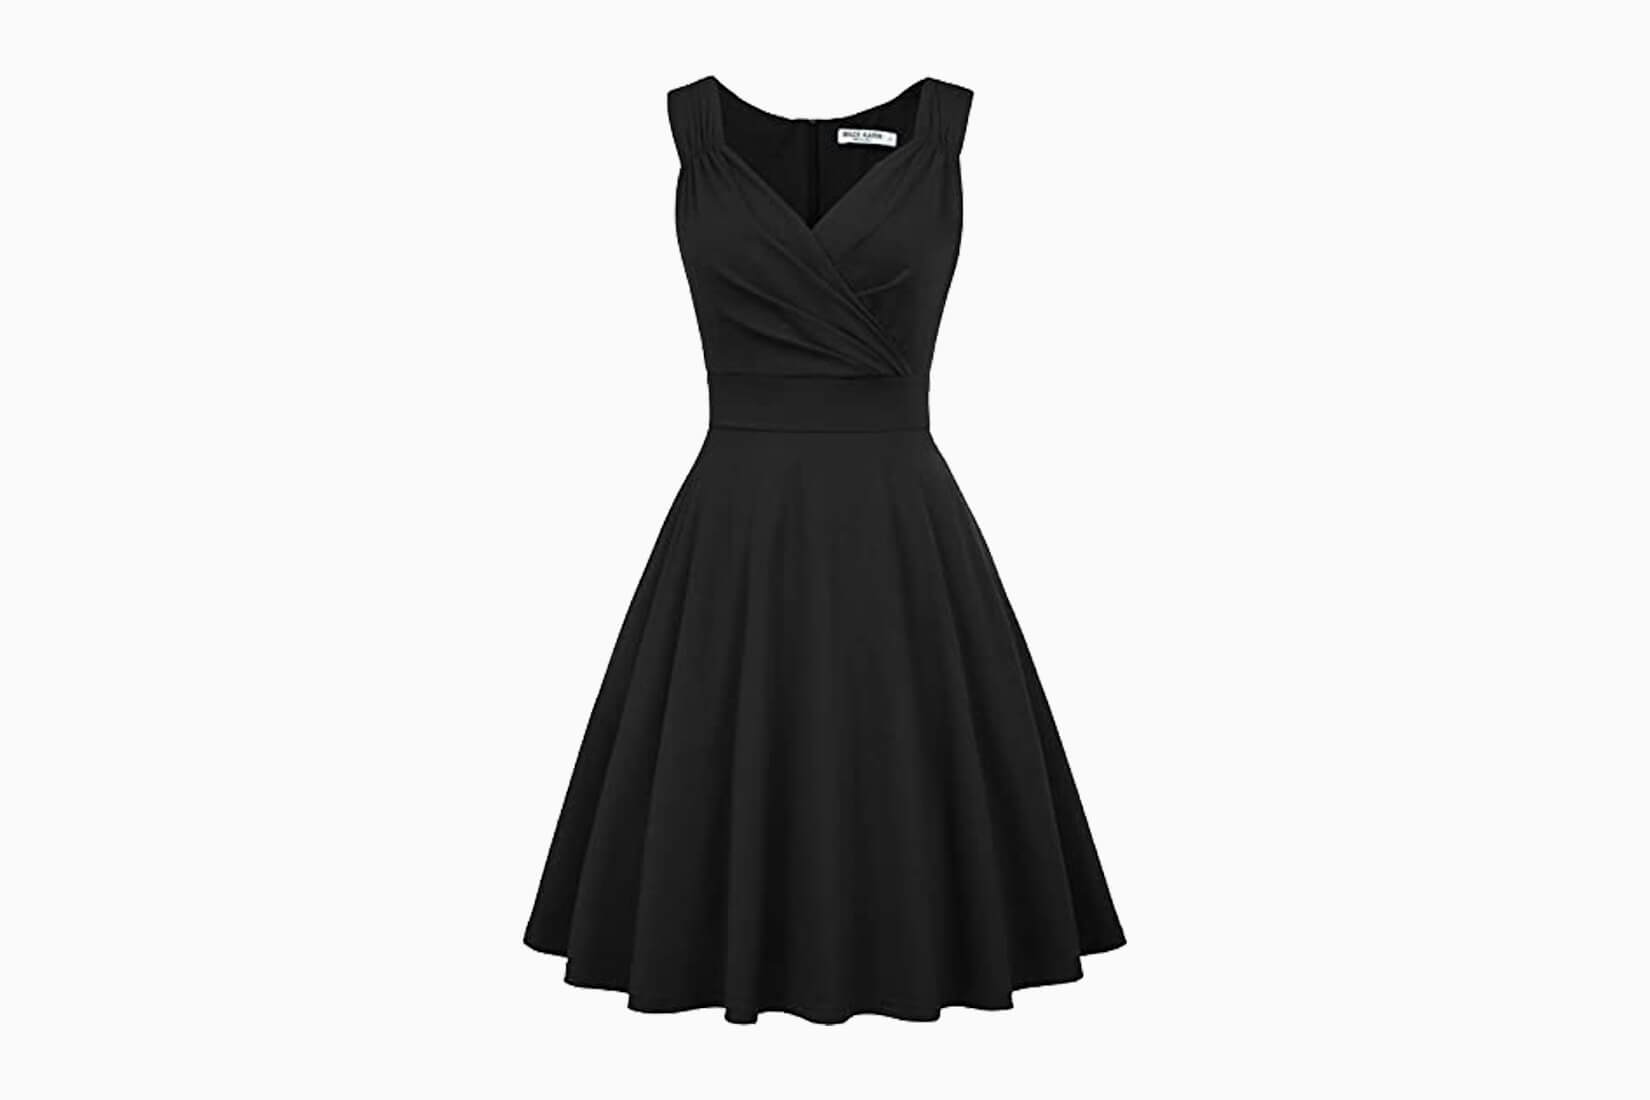 25 Best Little Black Dresses: LBD Styles For Every Occasion (2021)